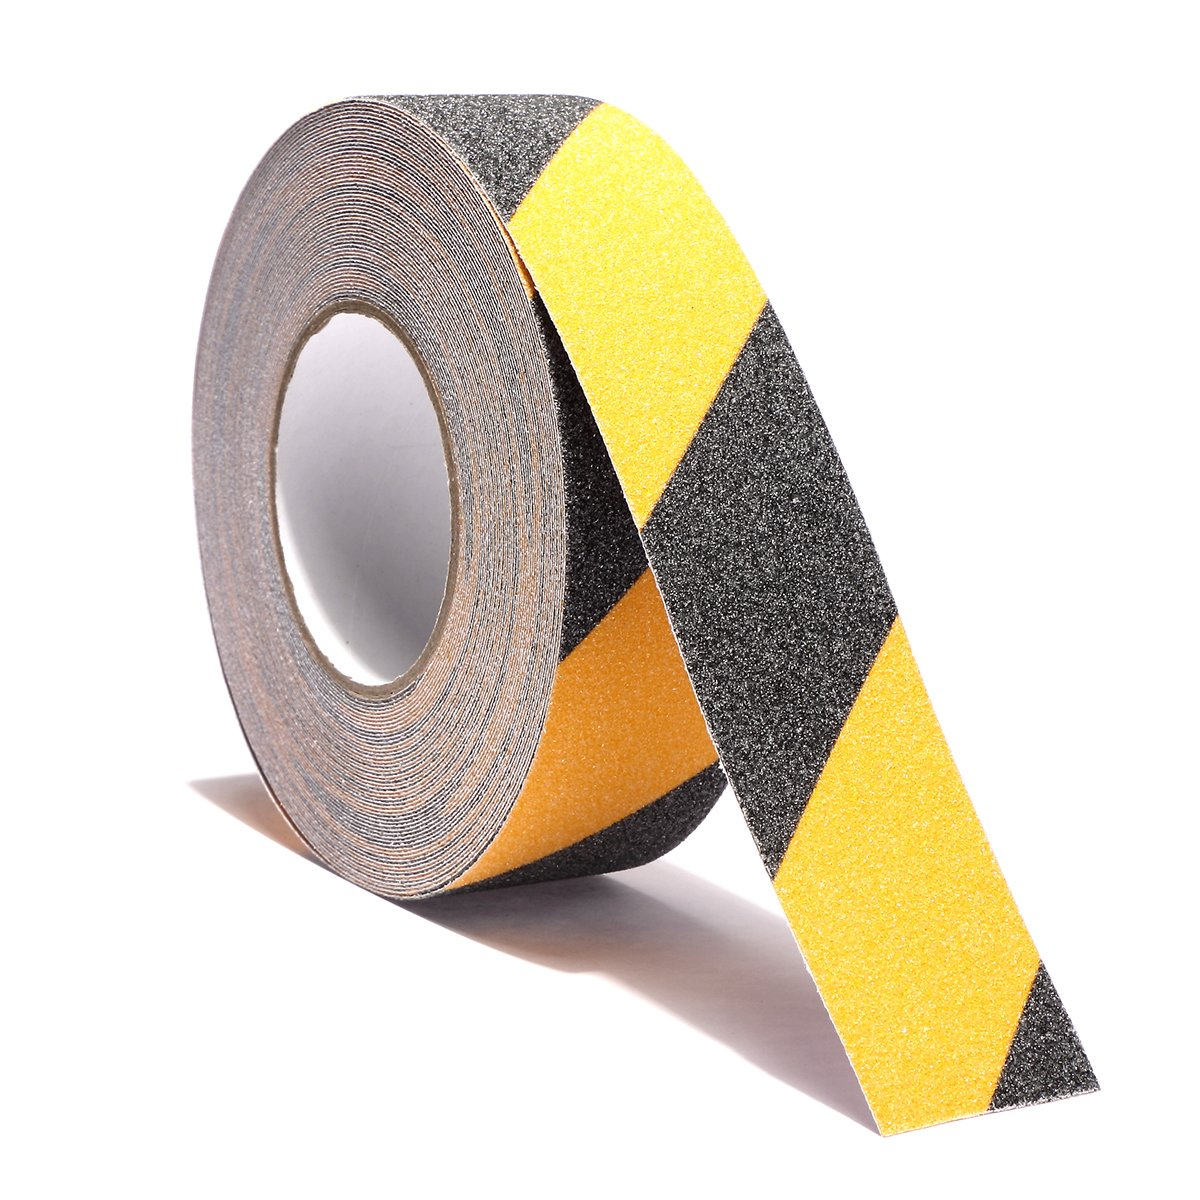 Non Slip Safety Grip Tape for Stairs Steps 2 Inch X 60 Foot - Indoor Outdoor Non Skid Tread High Traction Friction Friction Abrasive Adhesive Tape Yellow And Black